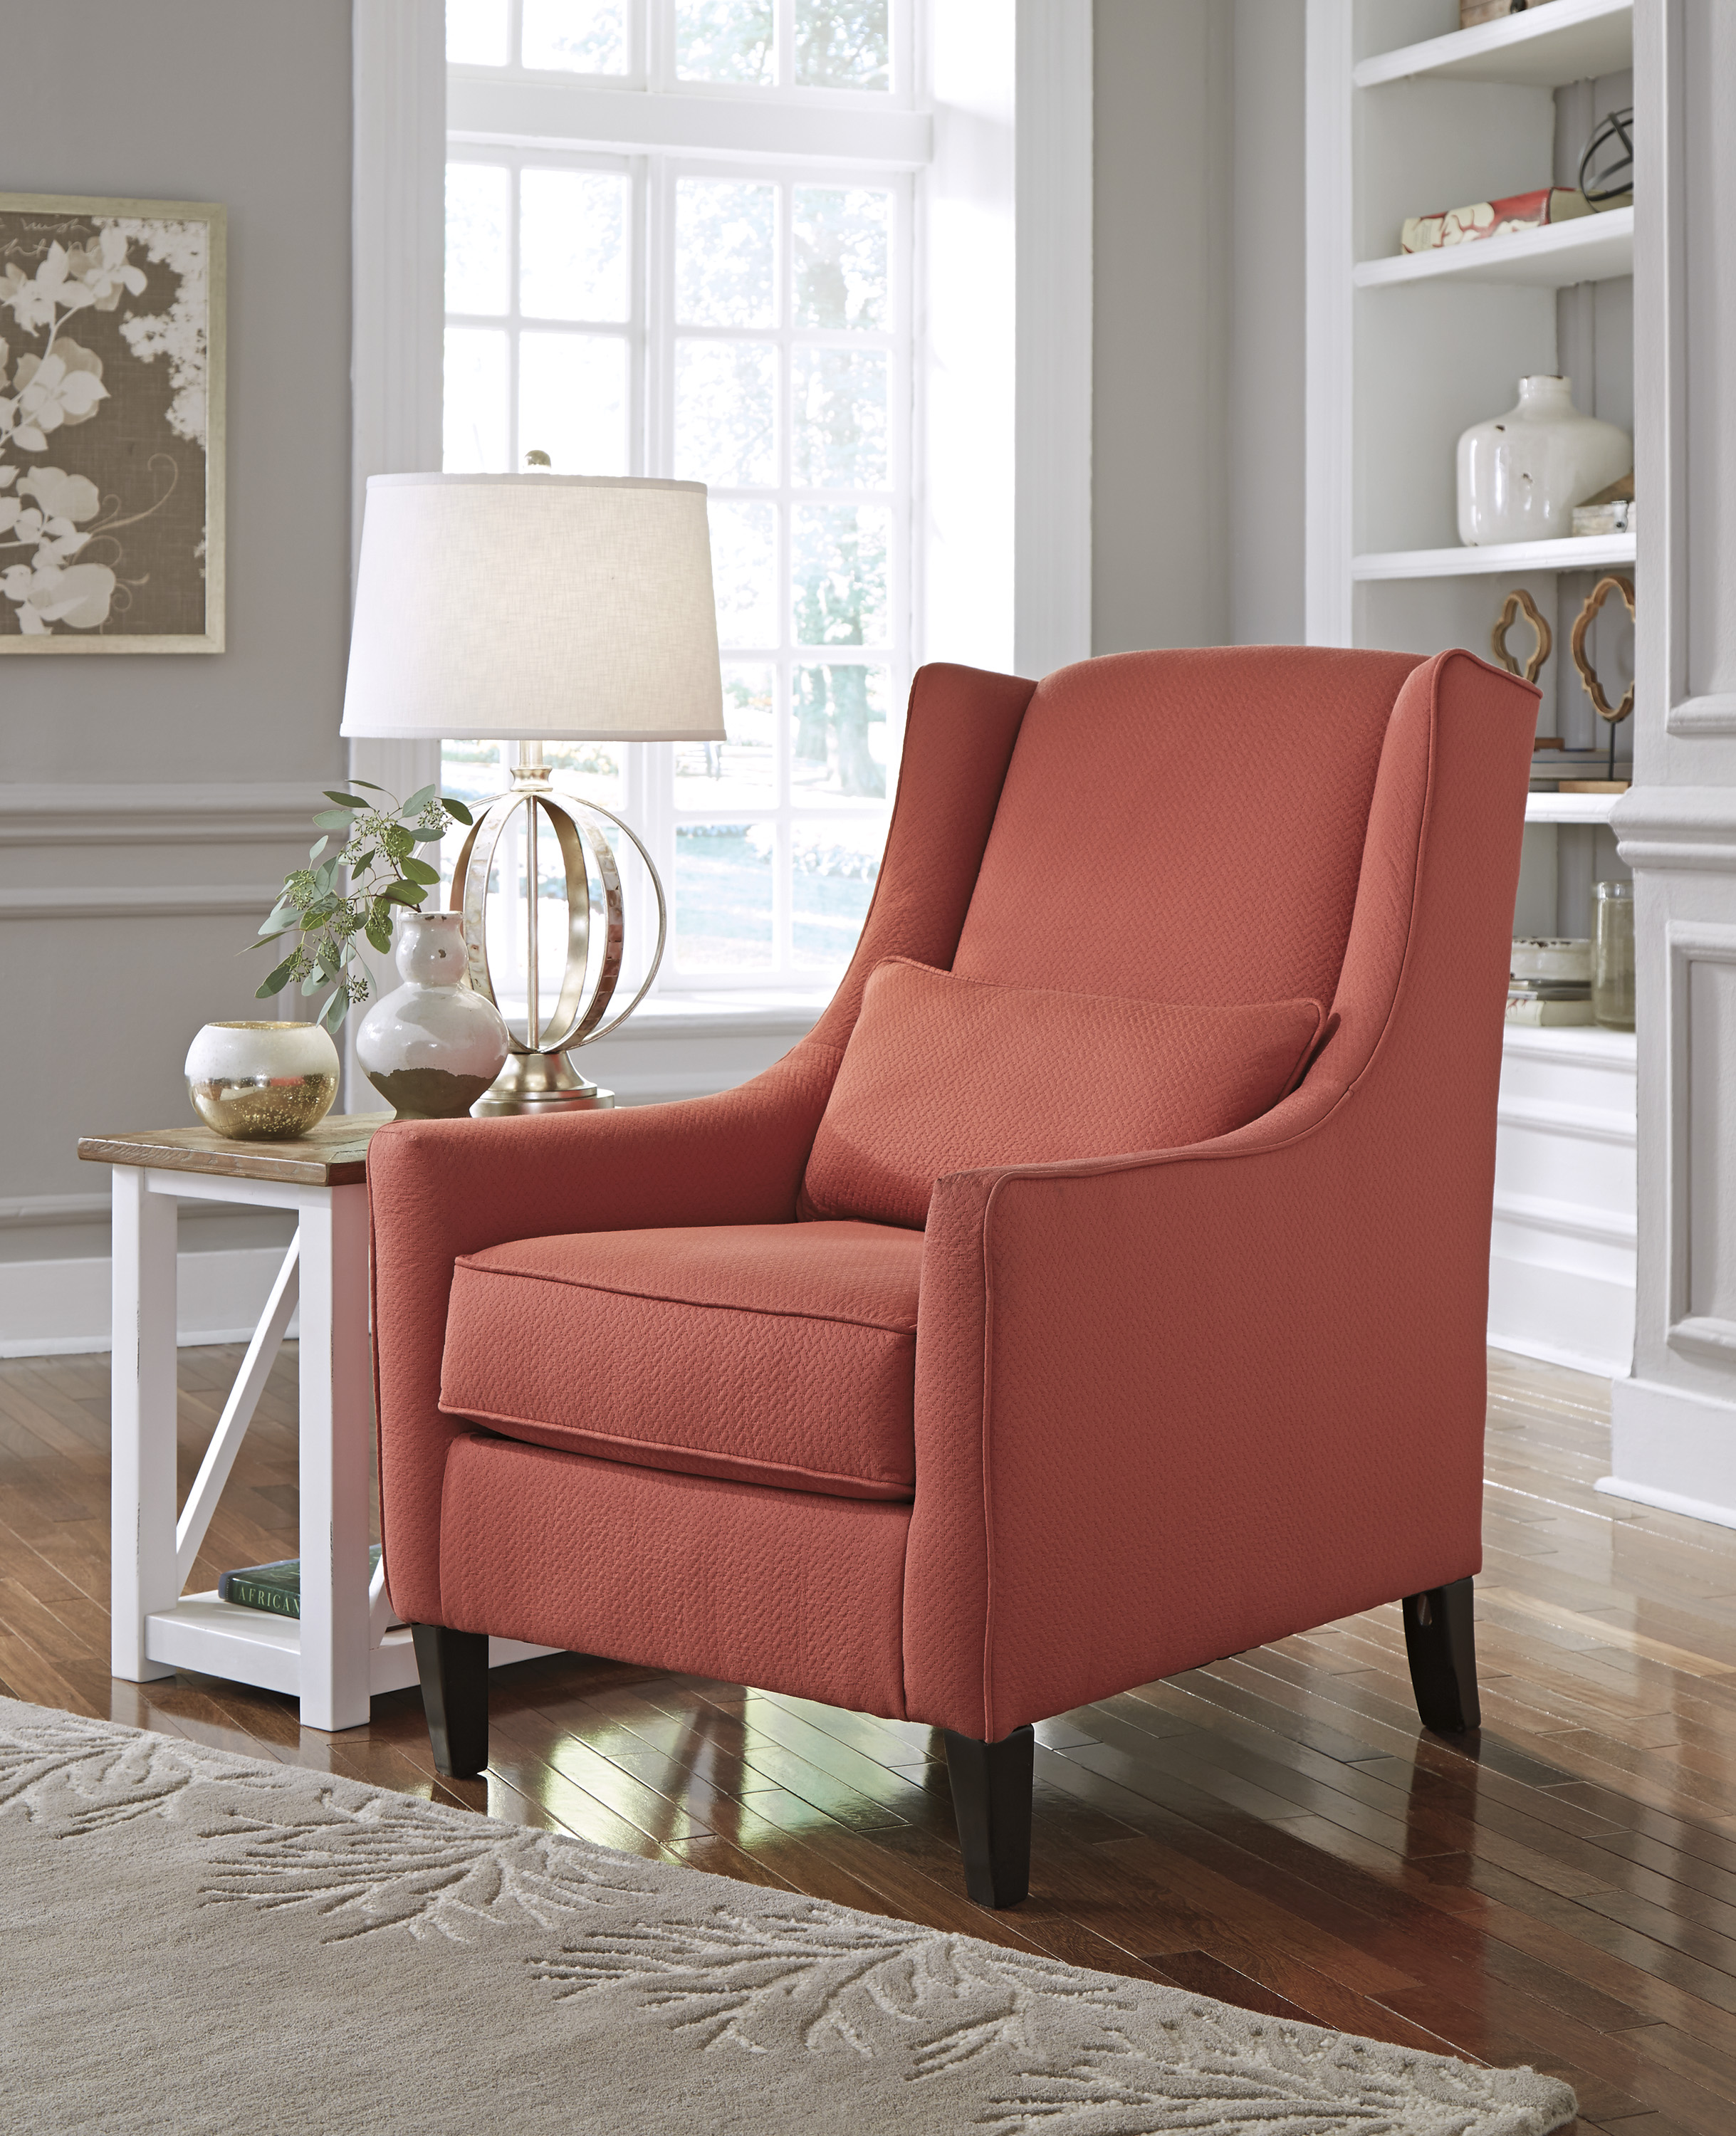 Ashley sansimeon red accent chair dallas tx living room chair furniture nation for Occasional chairs for living room